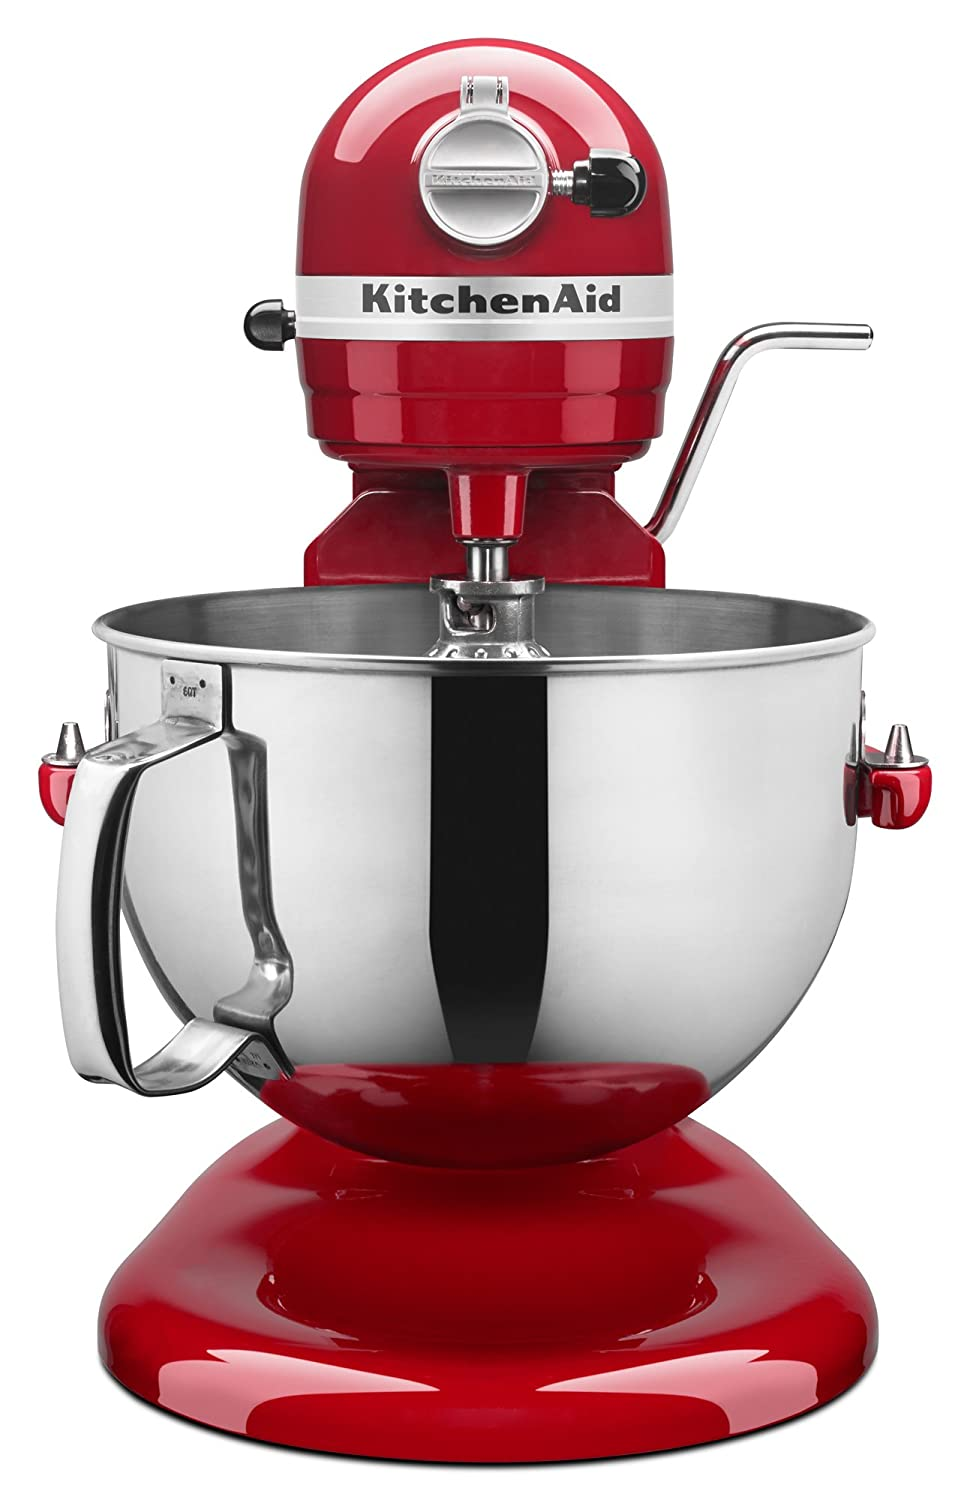 KitchenAid KL26M1XER Professional 6 quart Bowl-Lift Stand Mixer ...